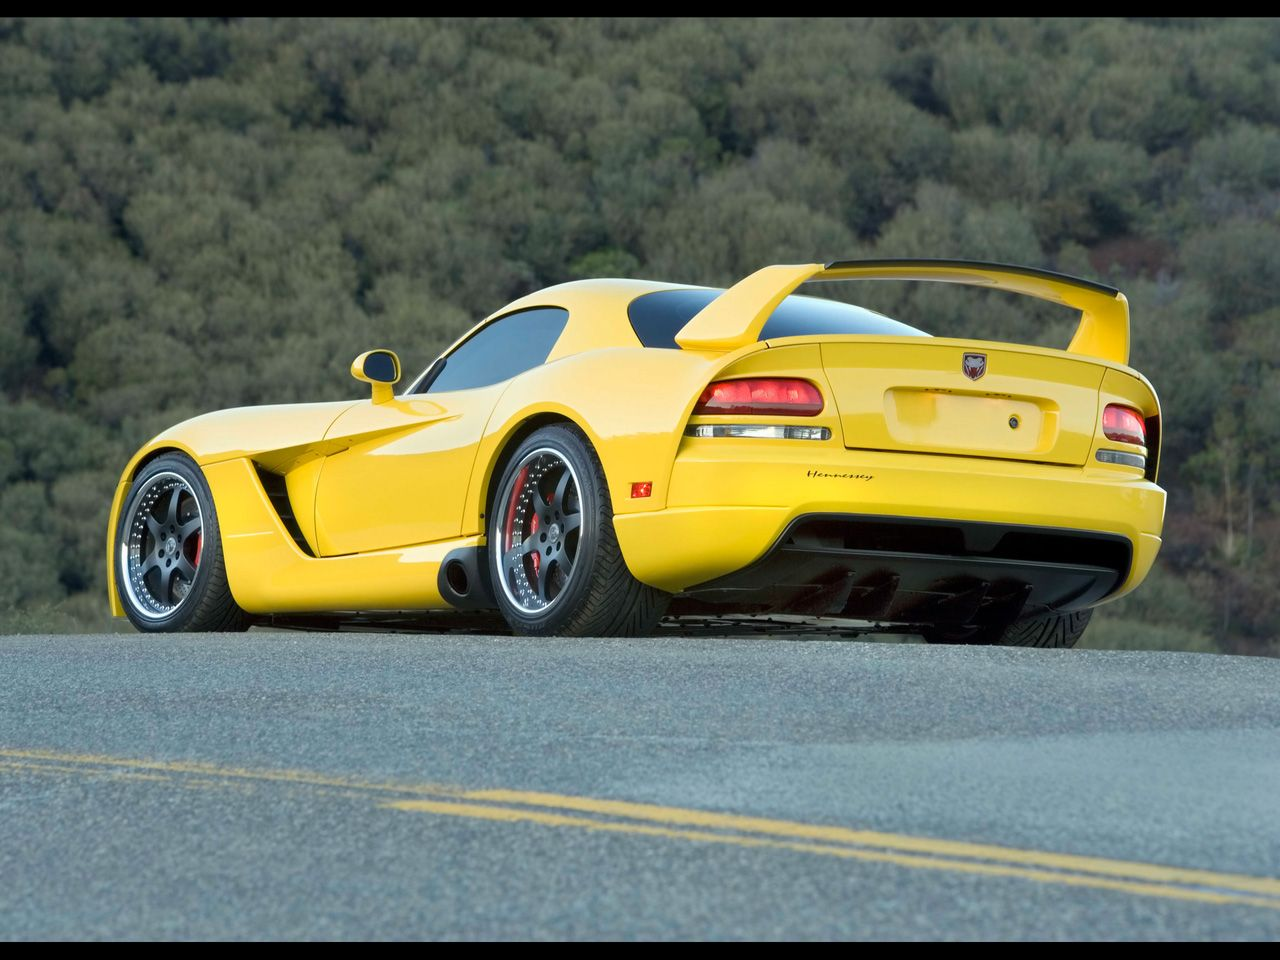 hennessey dodge viper yellow and still looks fast httpextreme modified venomdodge vipermopartwin turbocool